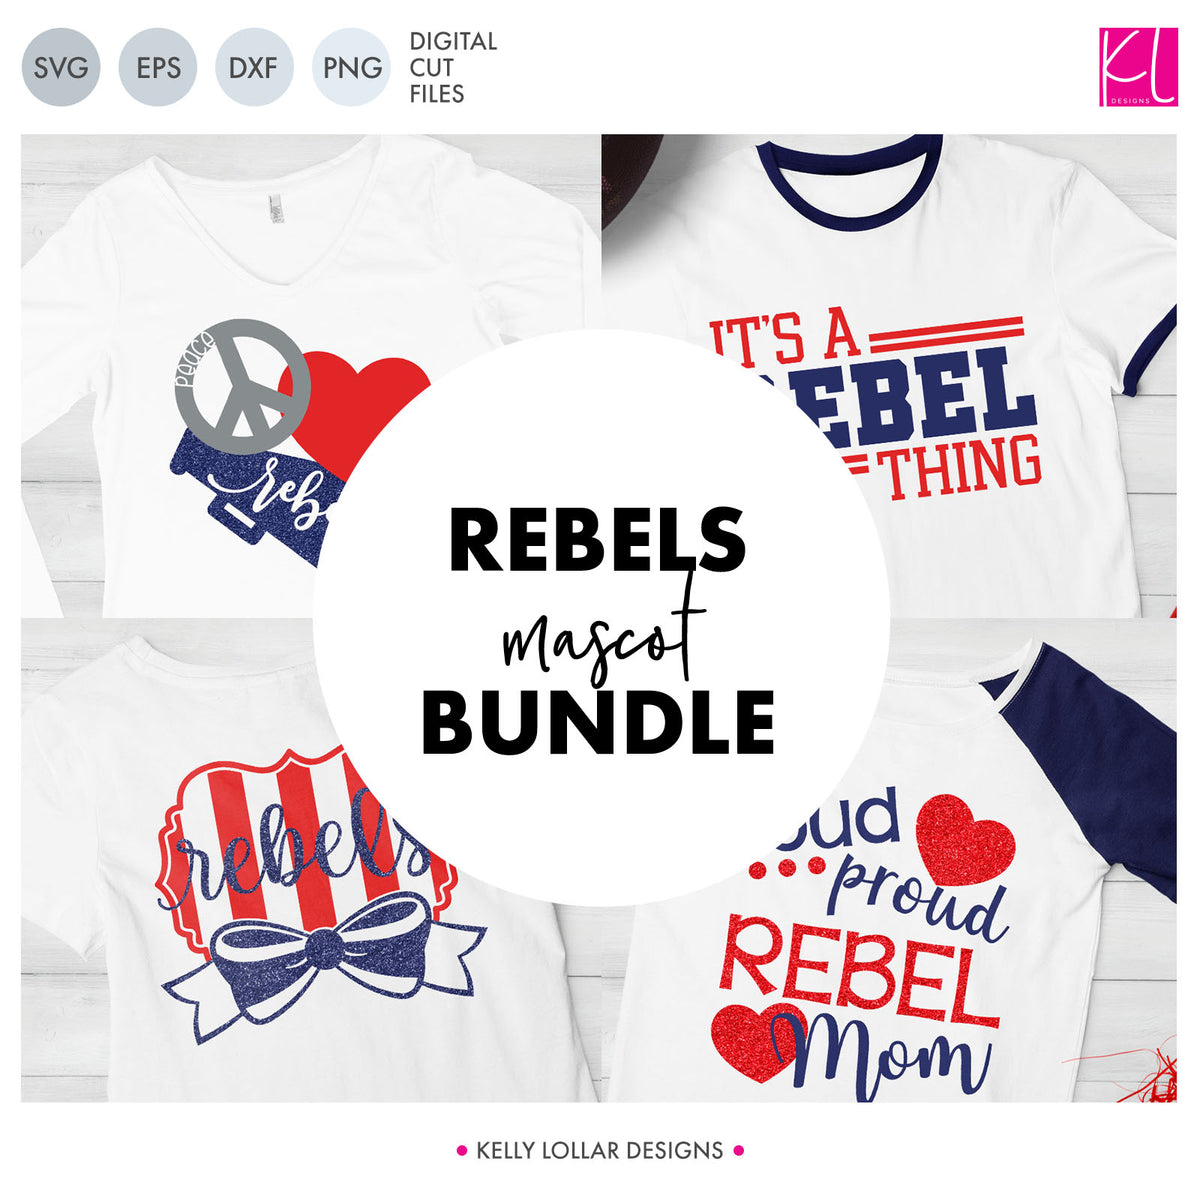 Rebels Mascot Bundle | SVG DXF EPS PNG Cut Files